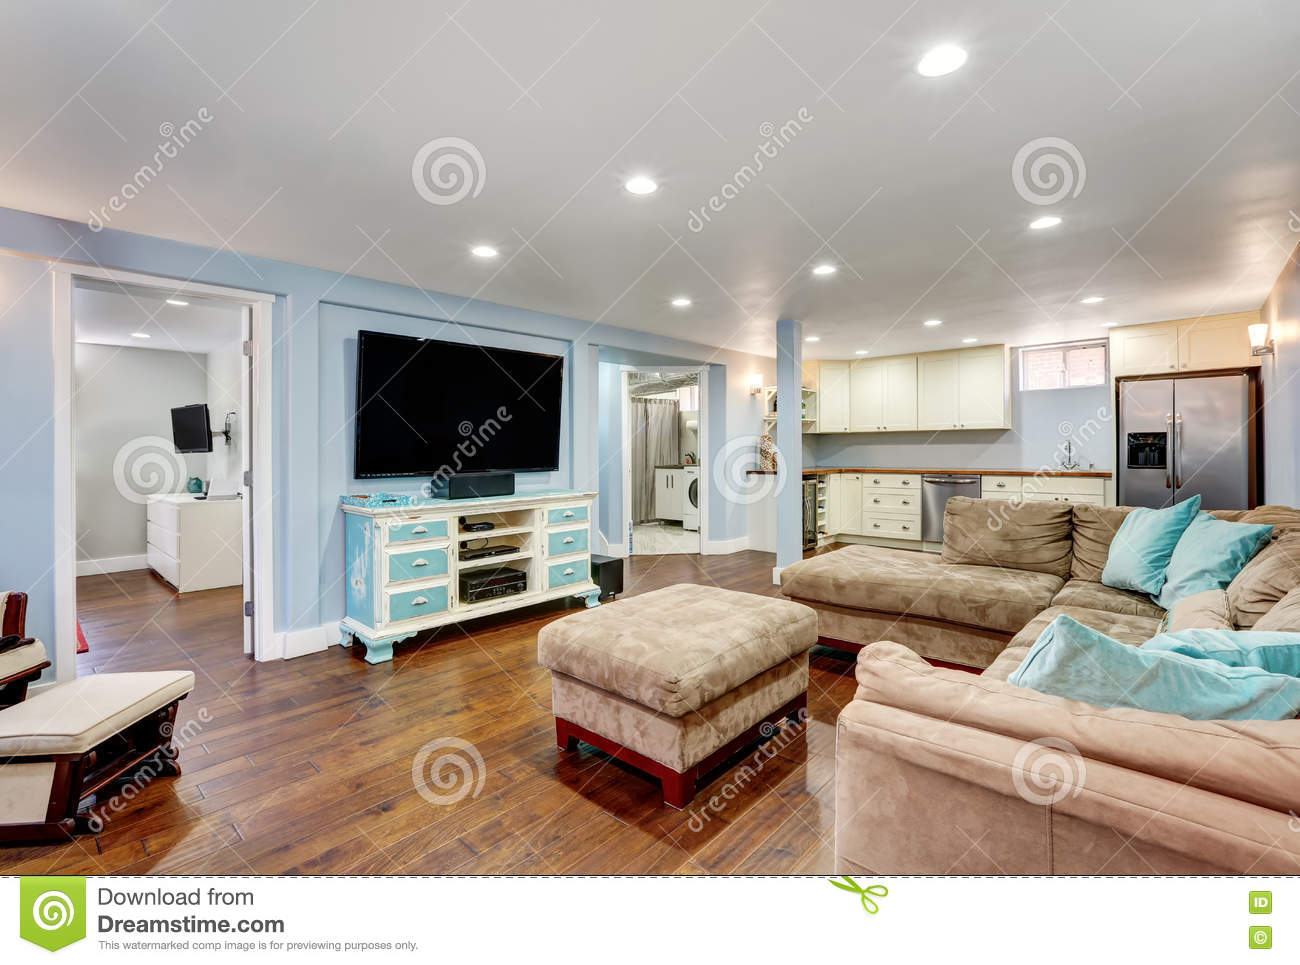 Basement Living Pastel Blue Walls In Basement Living Room Interiorstock Photo